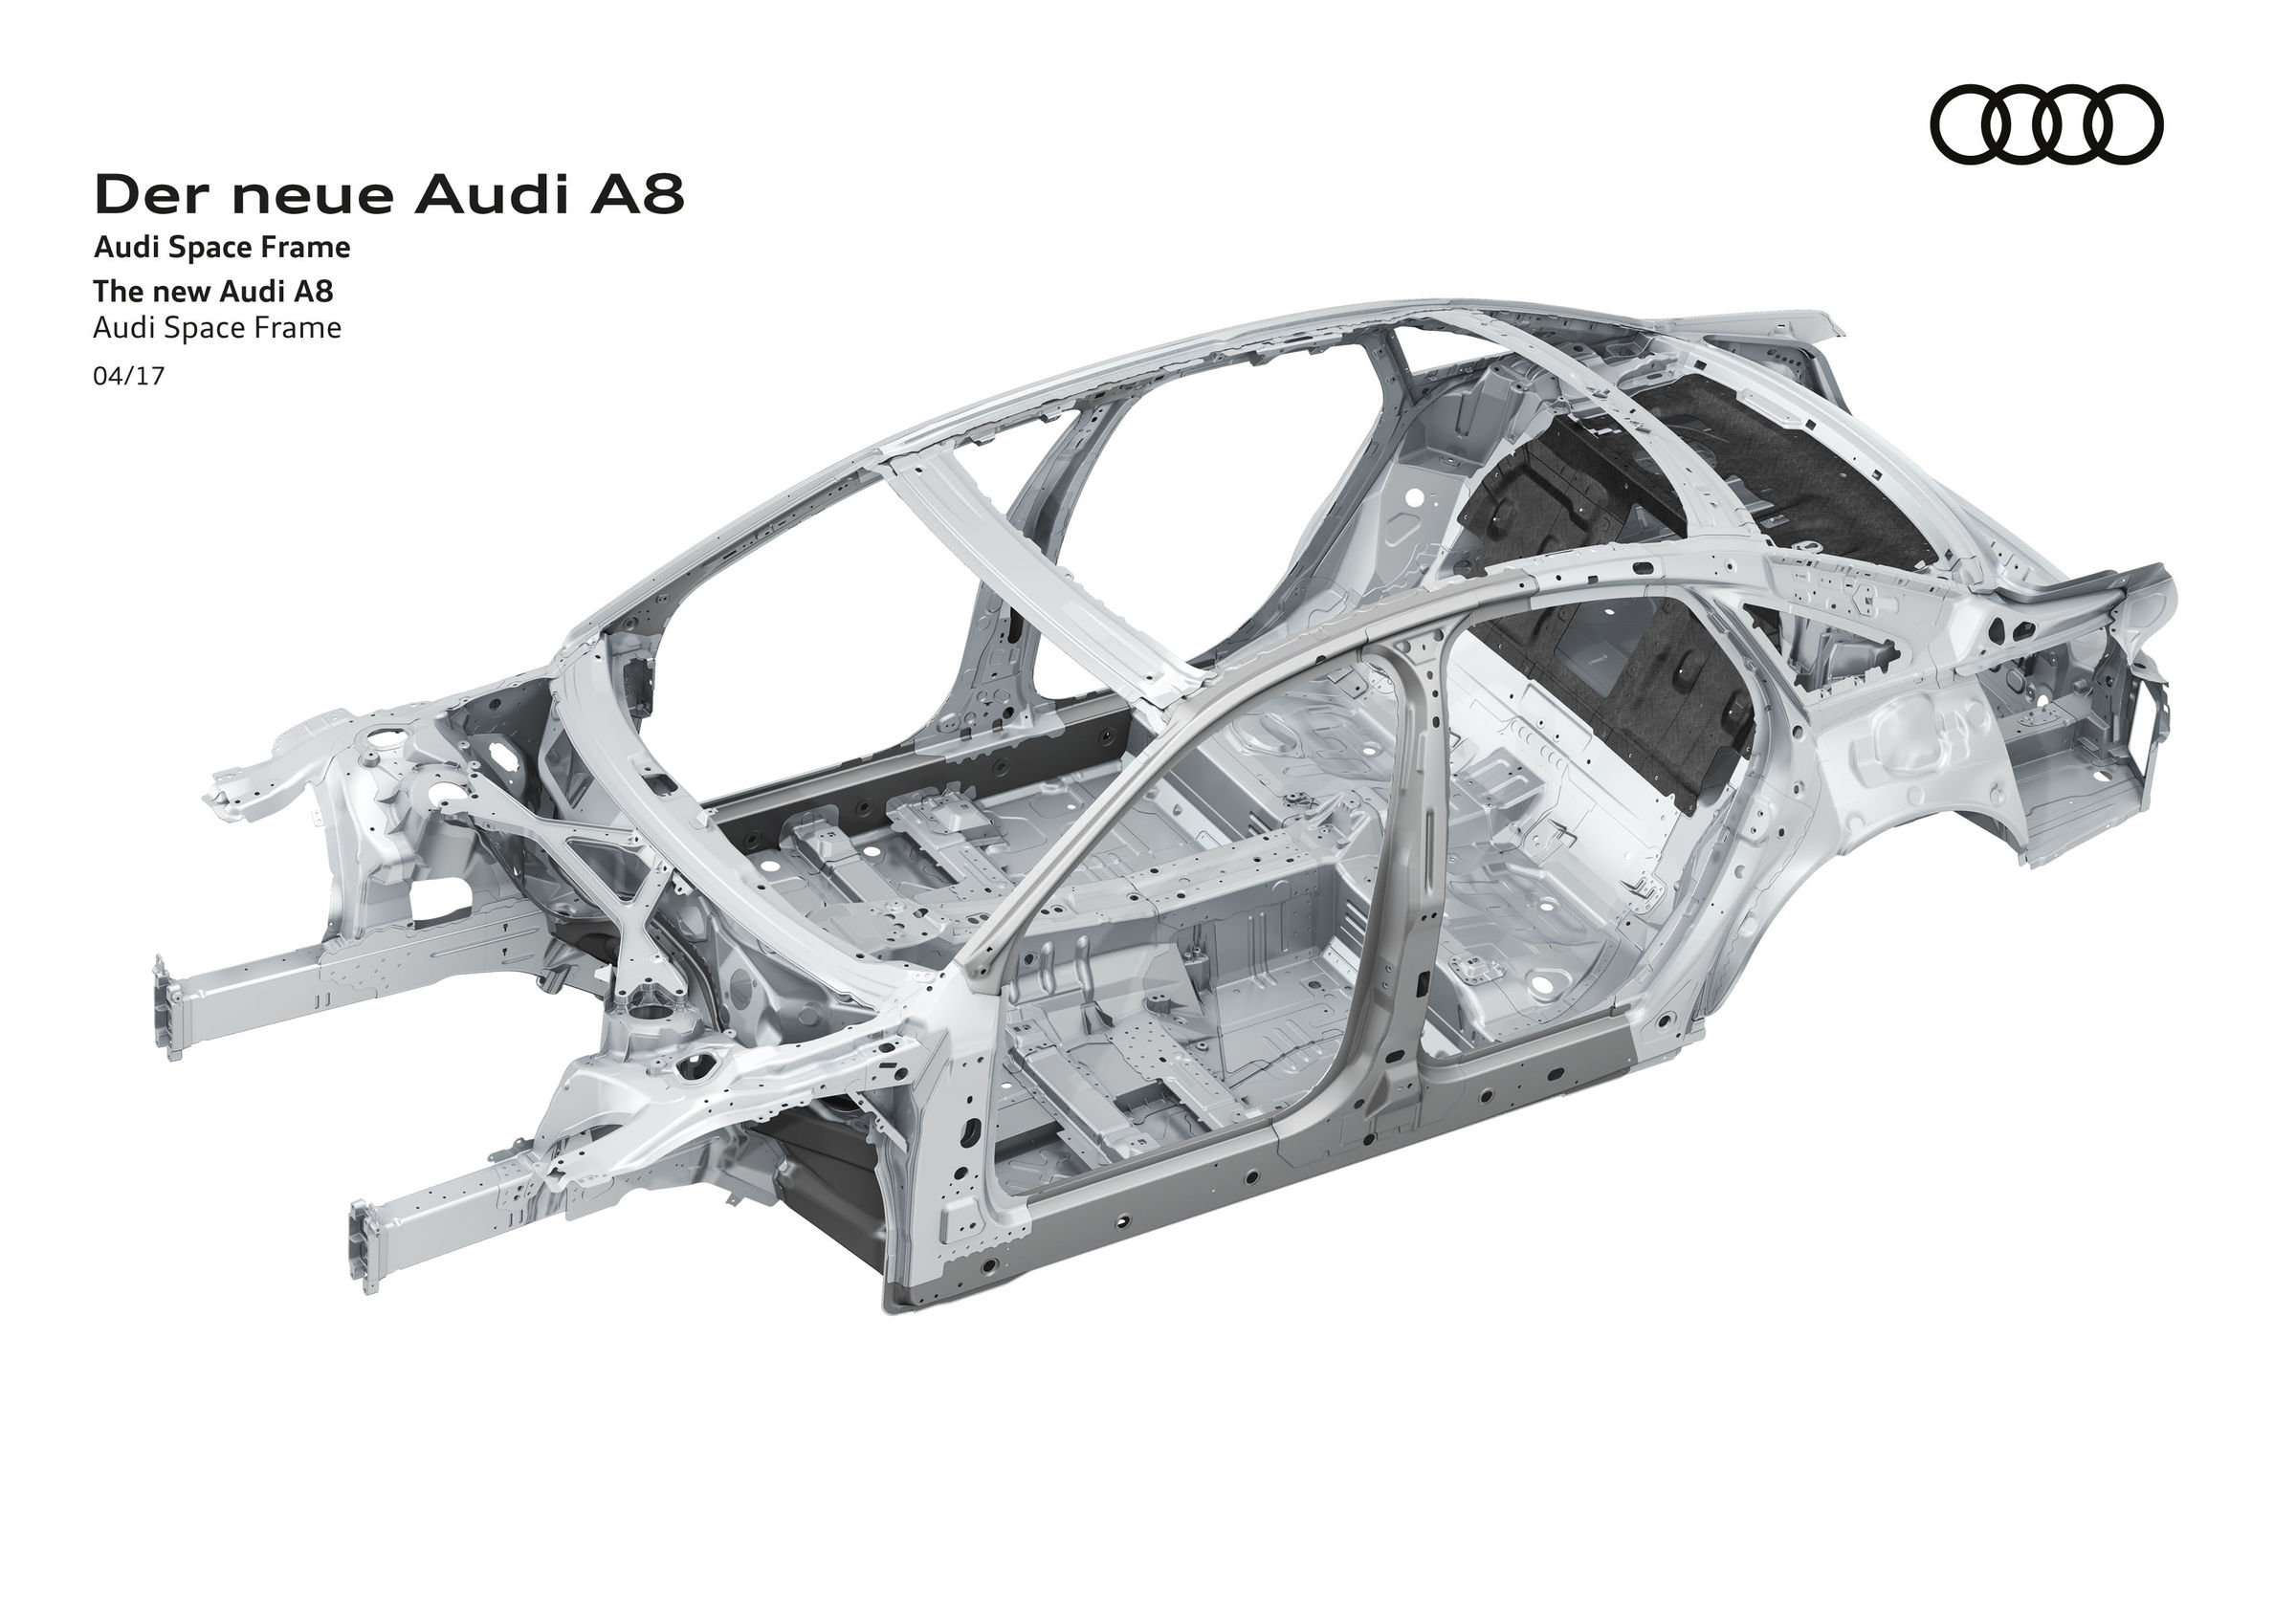 Body development at Audi – innovation, quality and precision | Audi ...